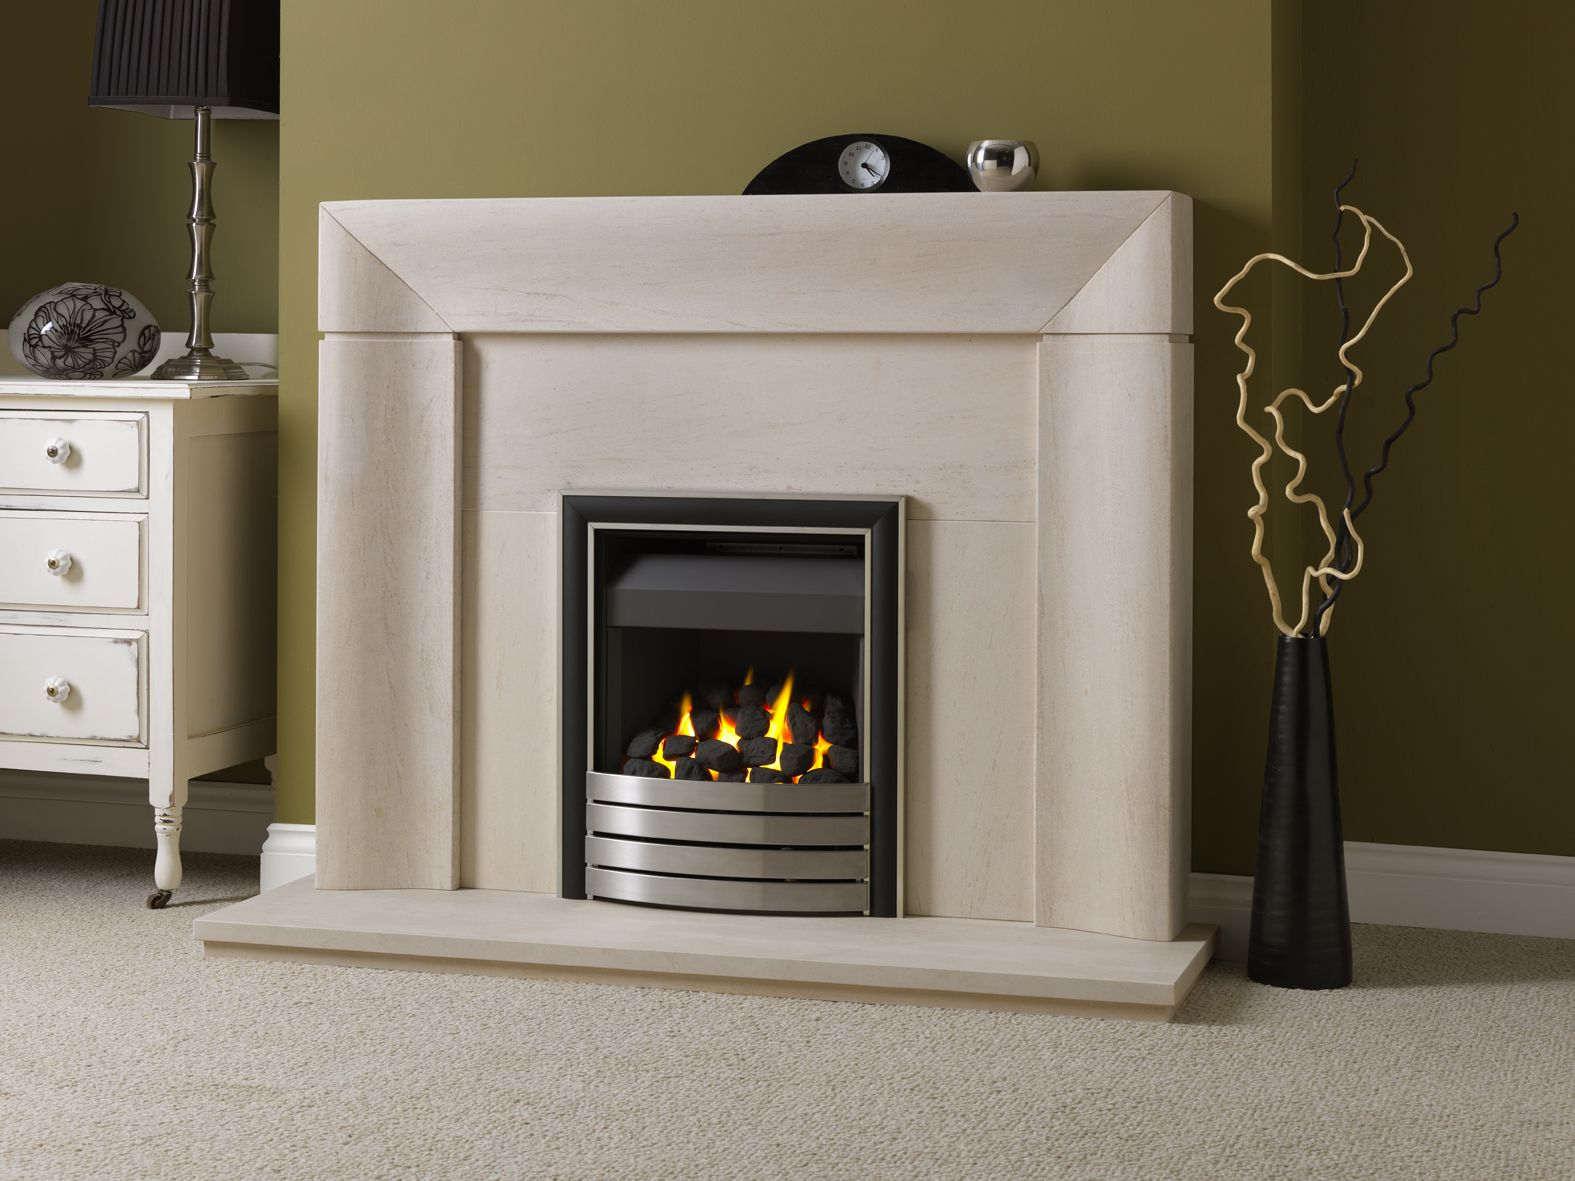 Paragon Convector P1 In Wave Elite Trim Satin. To Learn More About This  Design Or